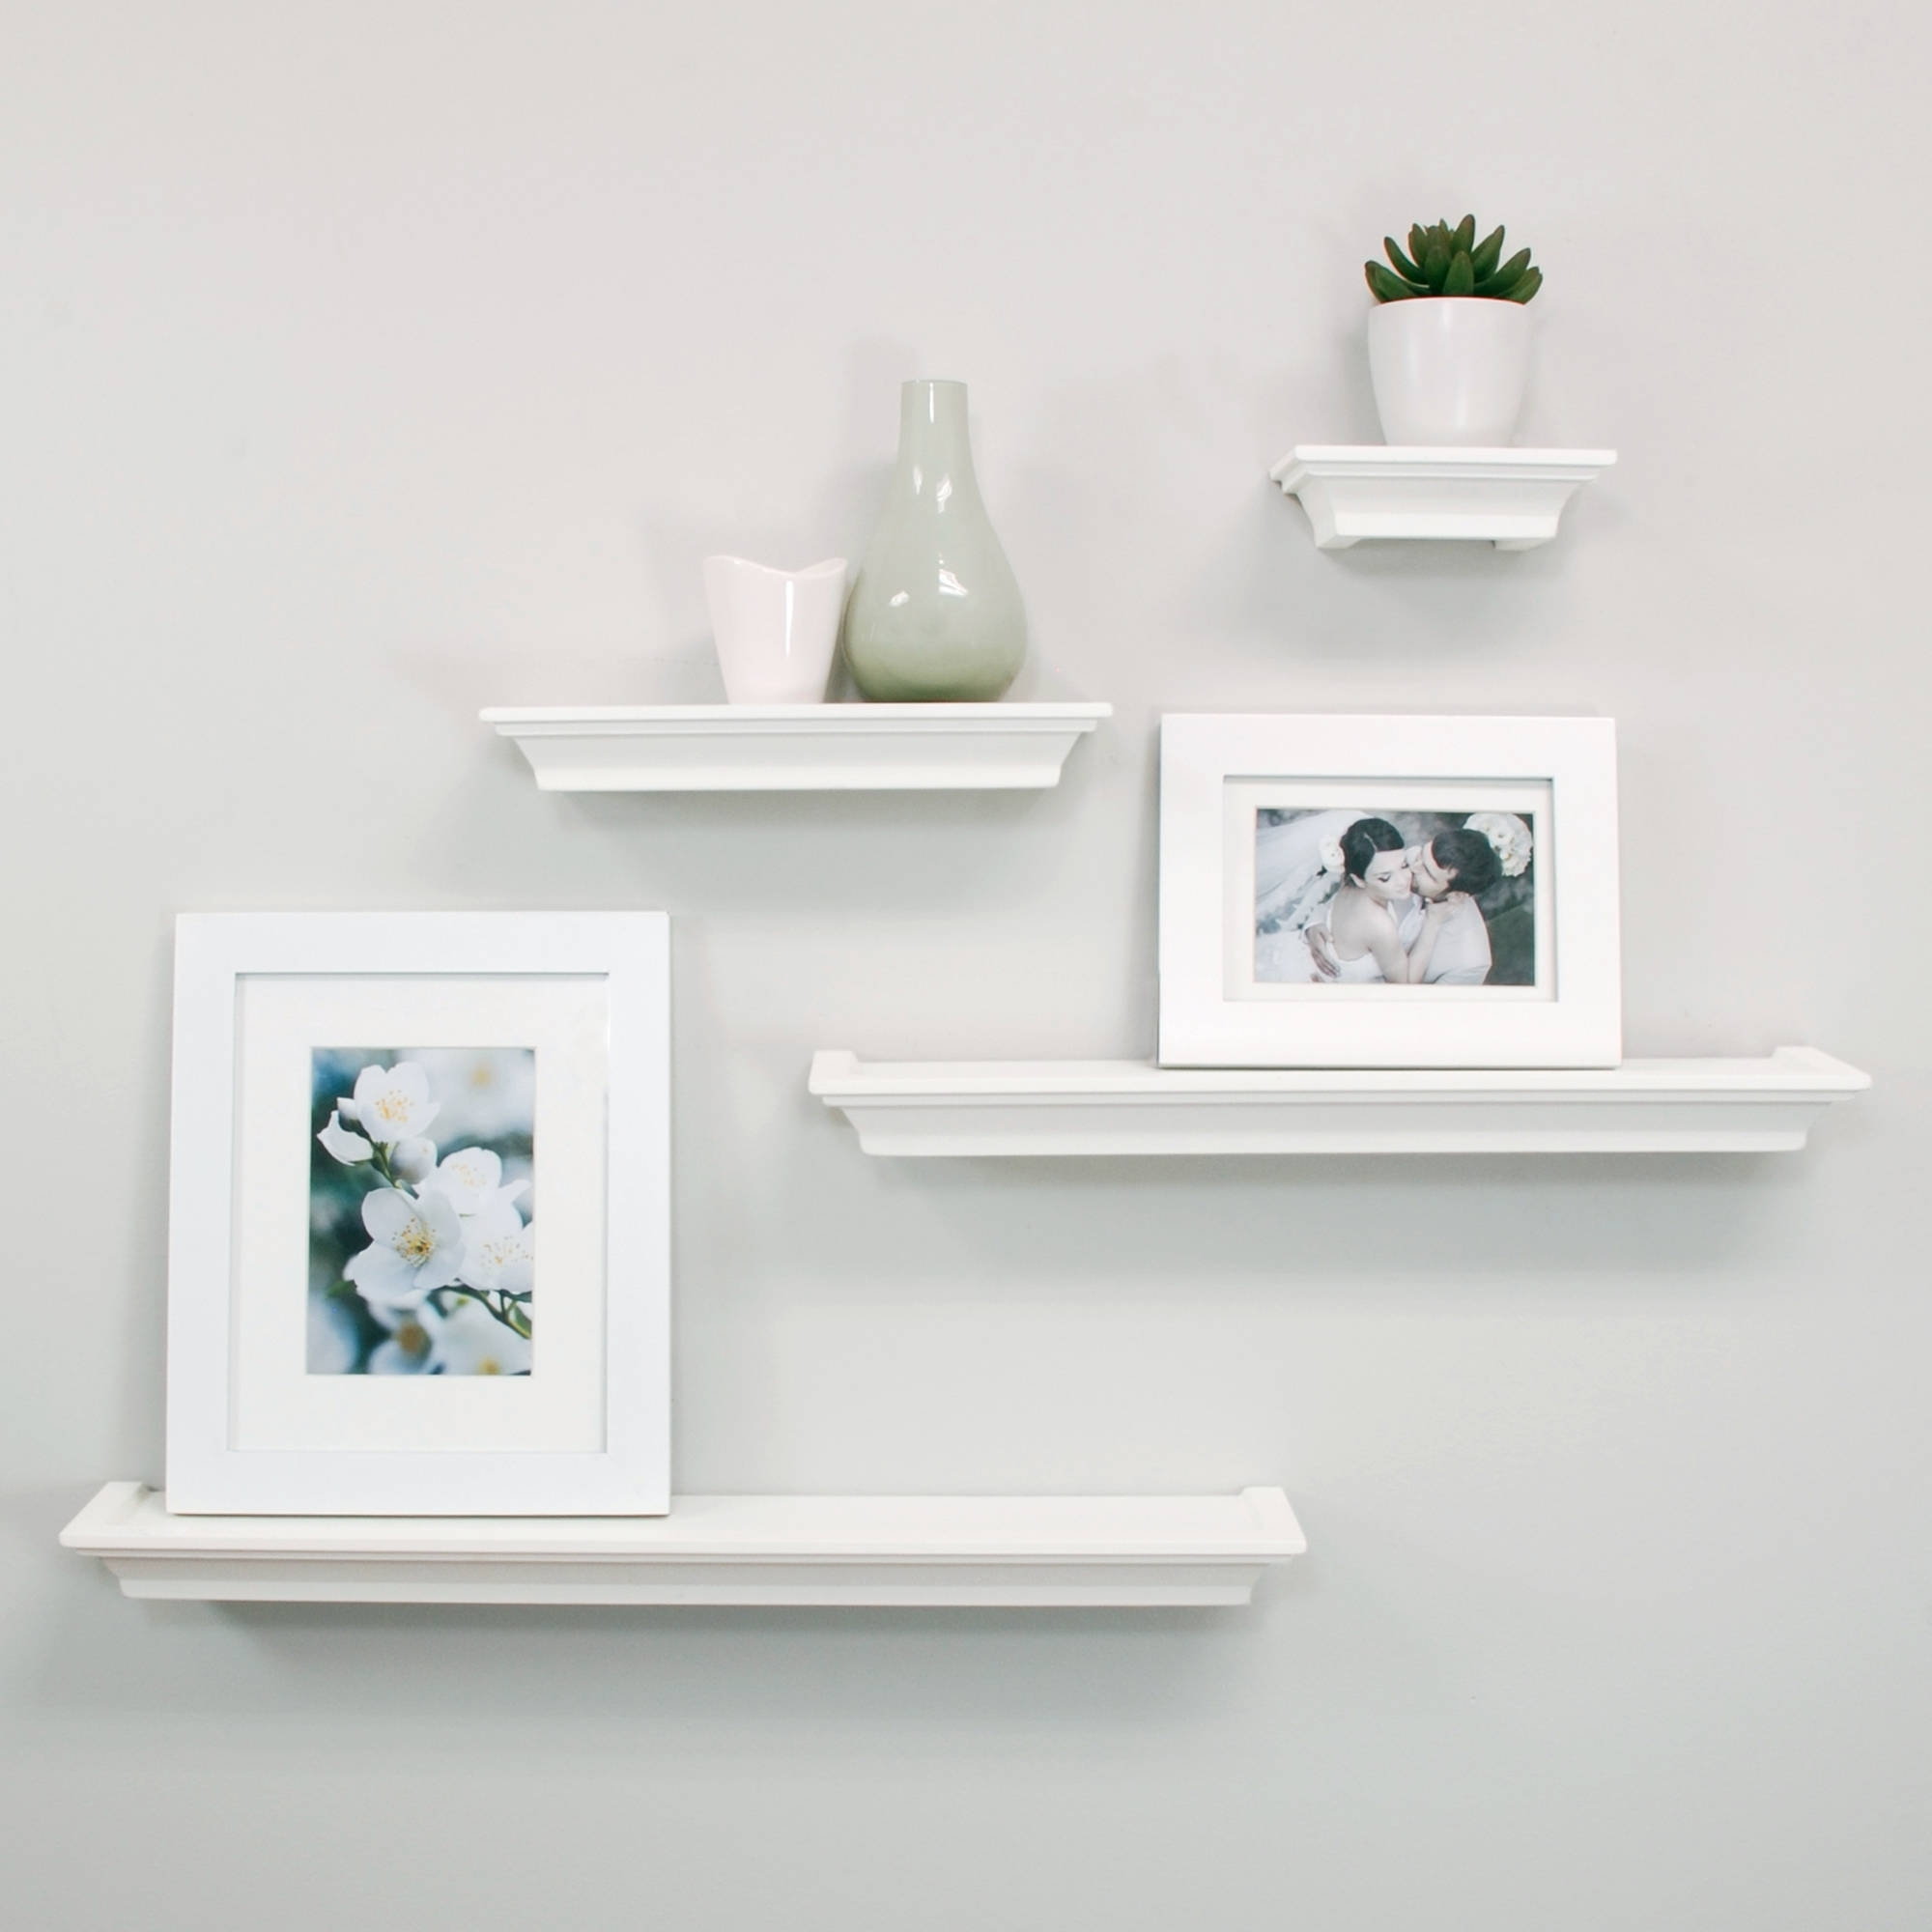 Most Current White Wall Shelves In Enigma Wall Shelf Set, 4 Piece – Walmart (View 3 of 15)